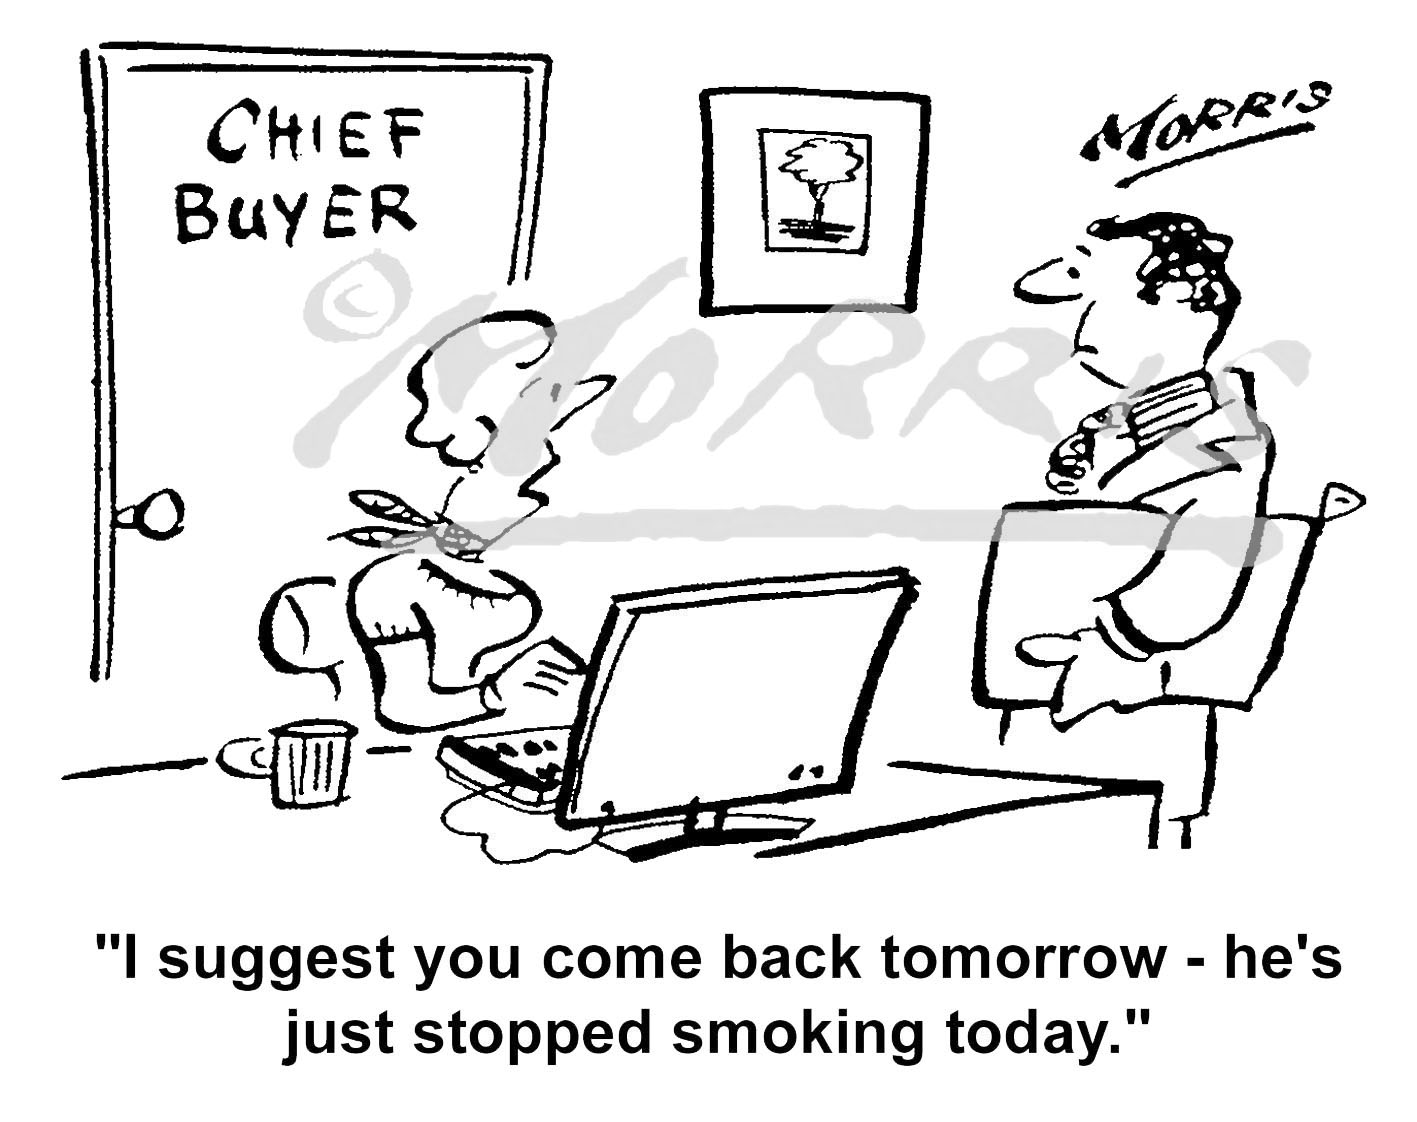 Chief Buyer smoking cartoon – Ref: 5371bw